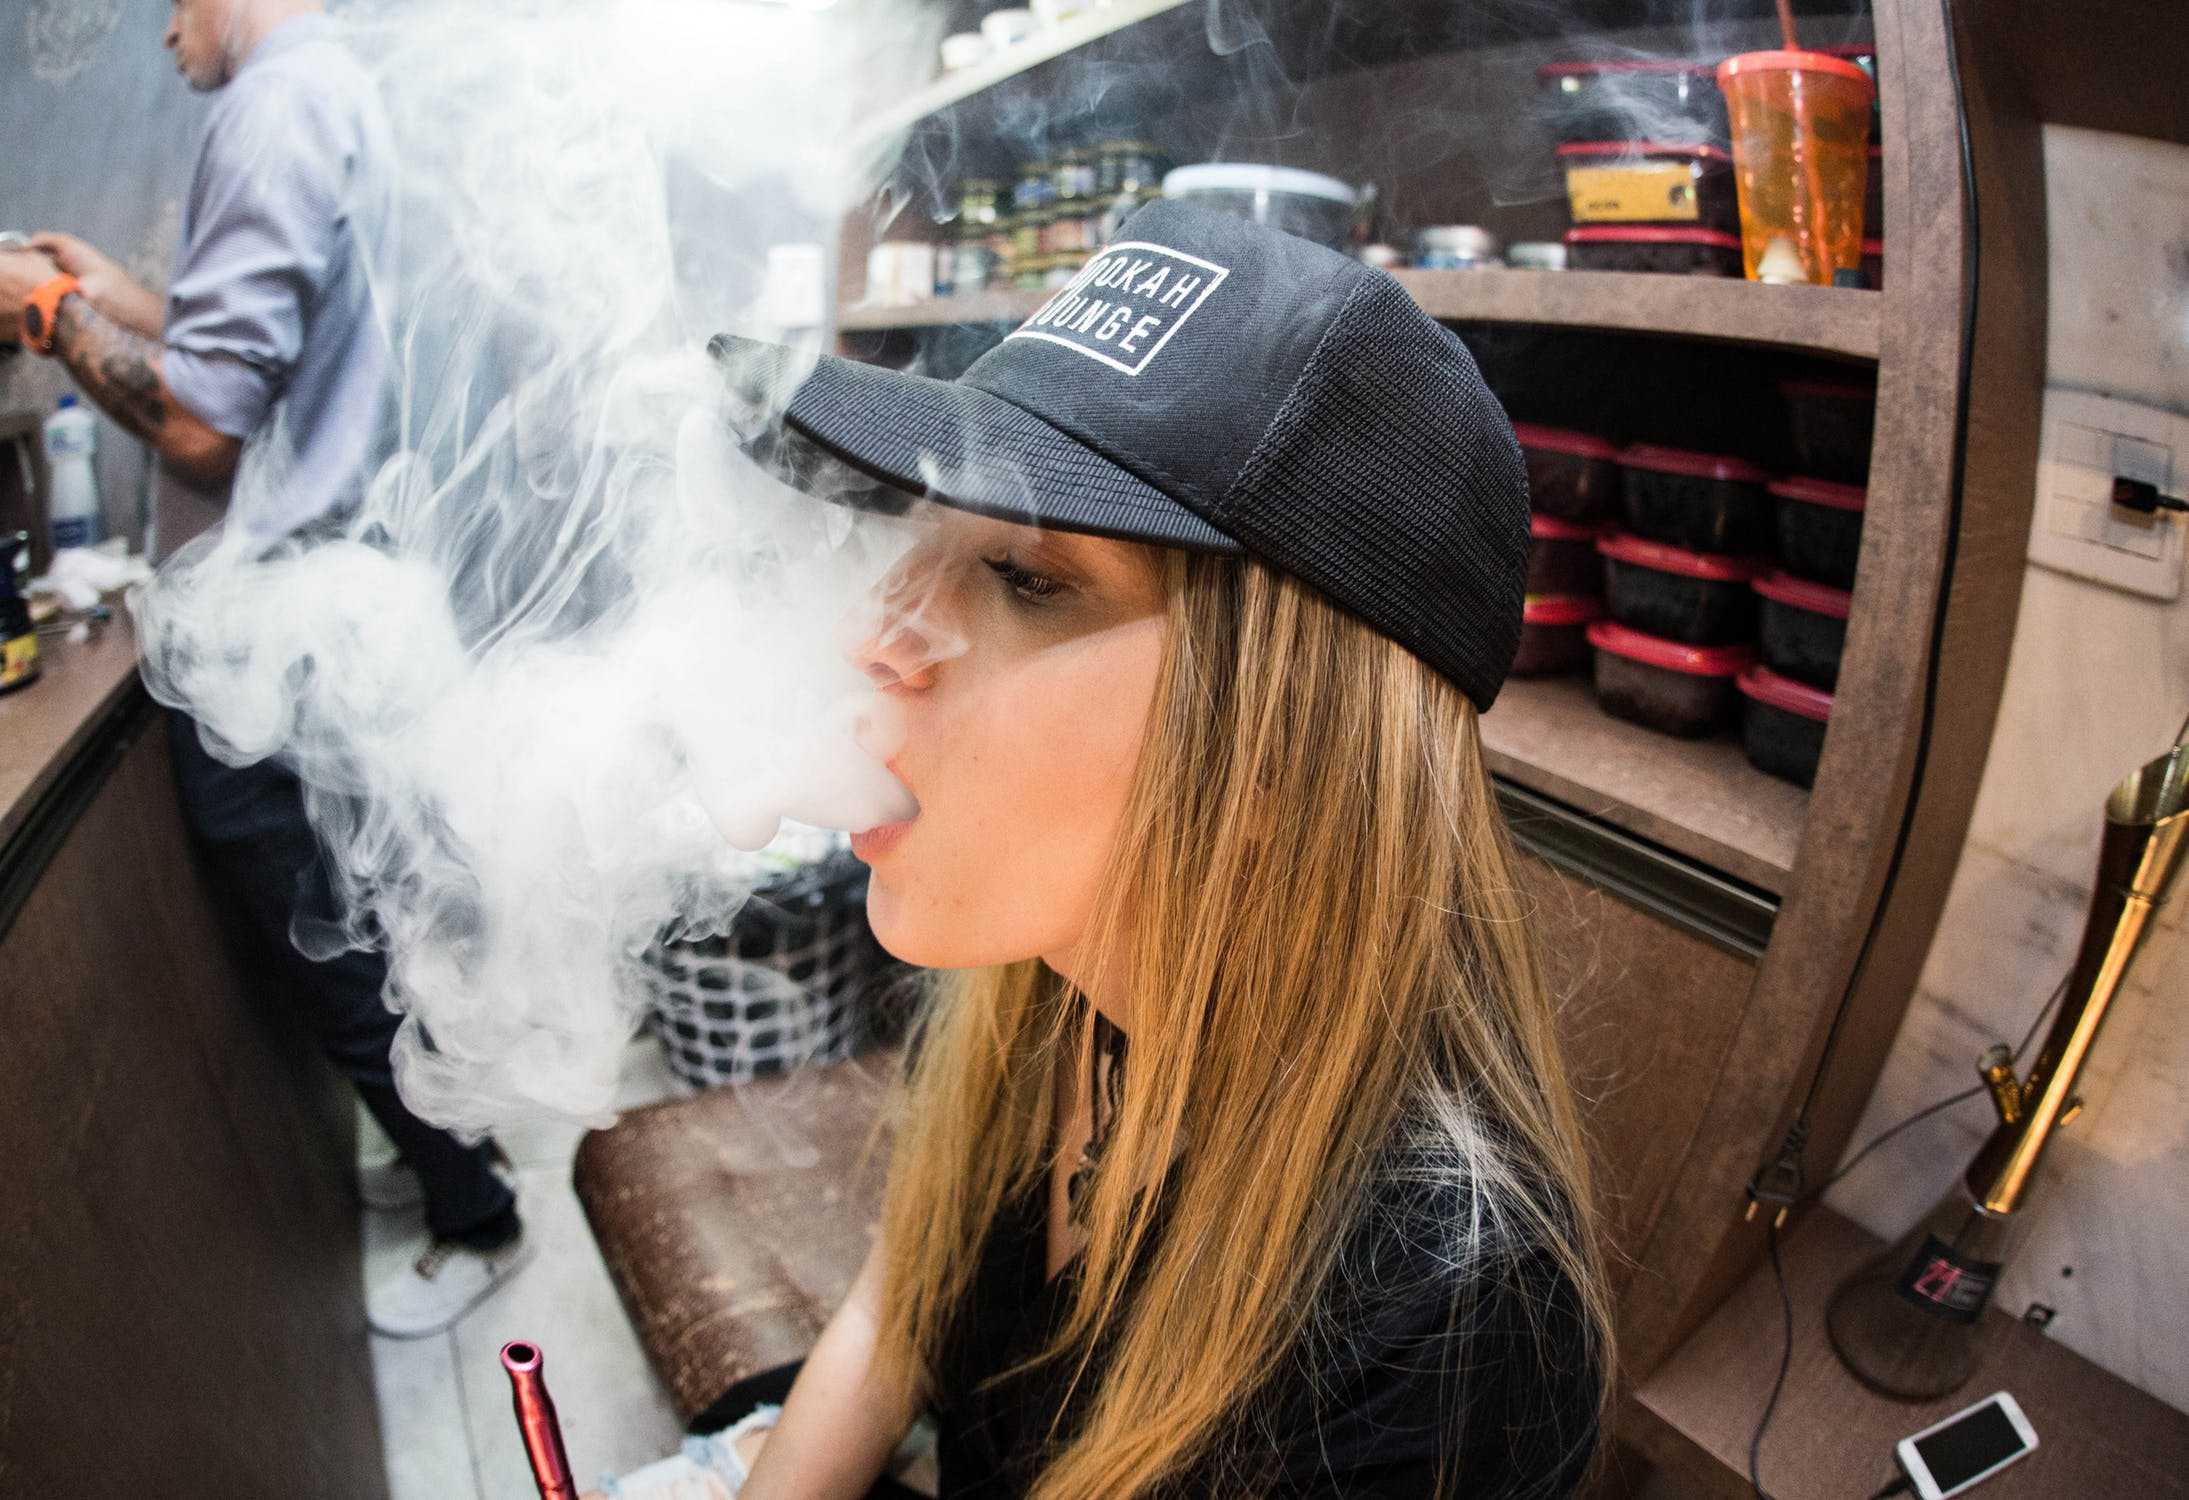 Are You a First-Time Vaper Looking for an E-Liquid Shop? Read This…